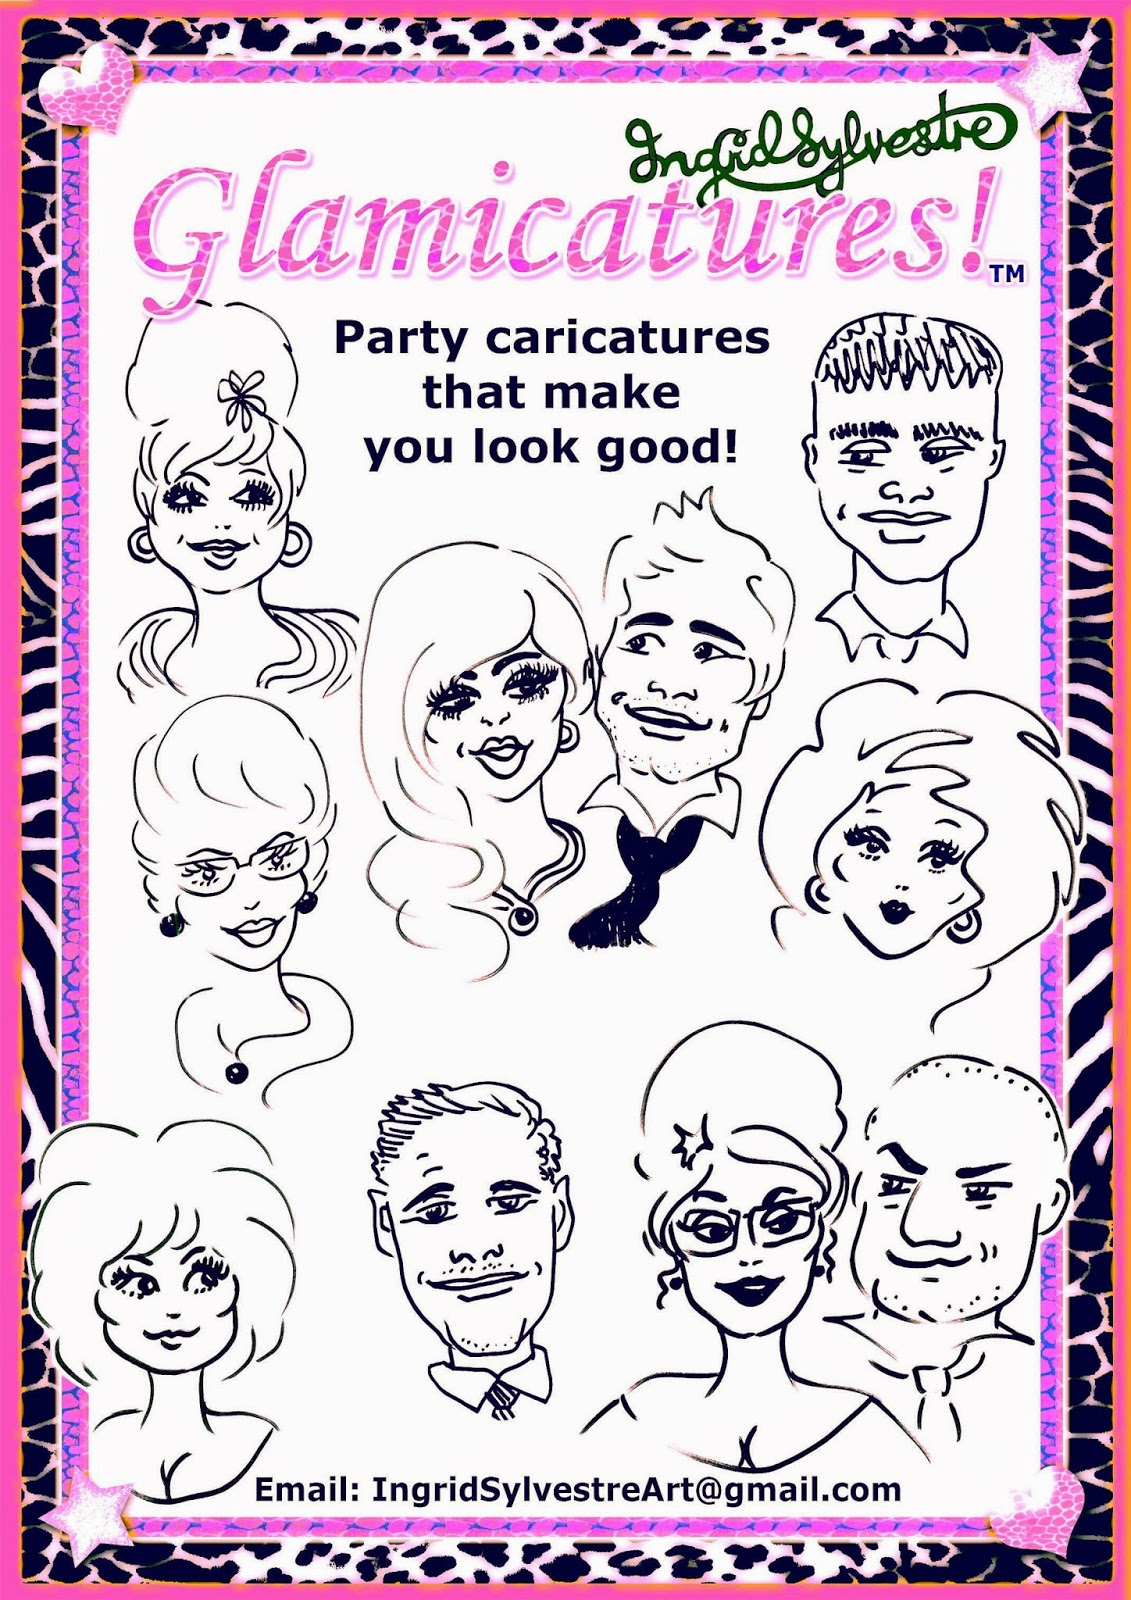 Luxury Wedding Entertainment ideas UK Ingrid Sylvestre Glamicatures TM Caricatures that make you look good Unique Wedding Entertainment ideas Top Quality Wedding Entertainment ideas UK Wedding Reception Entertainment ideas Unusual Wedding Evening